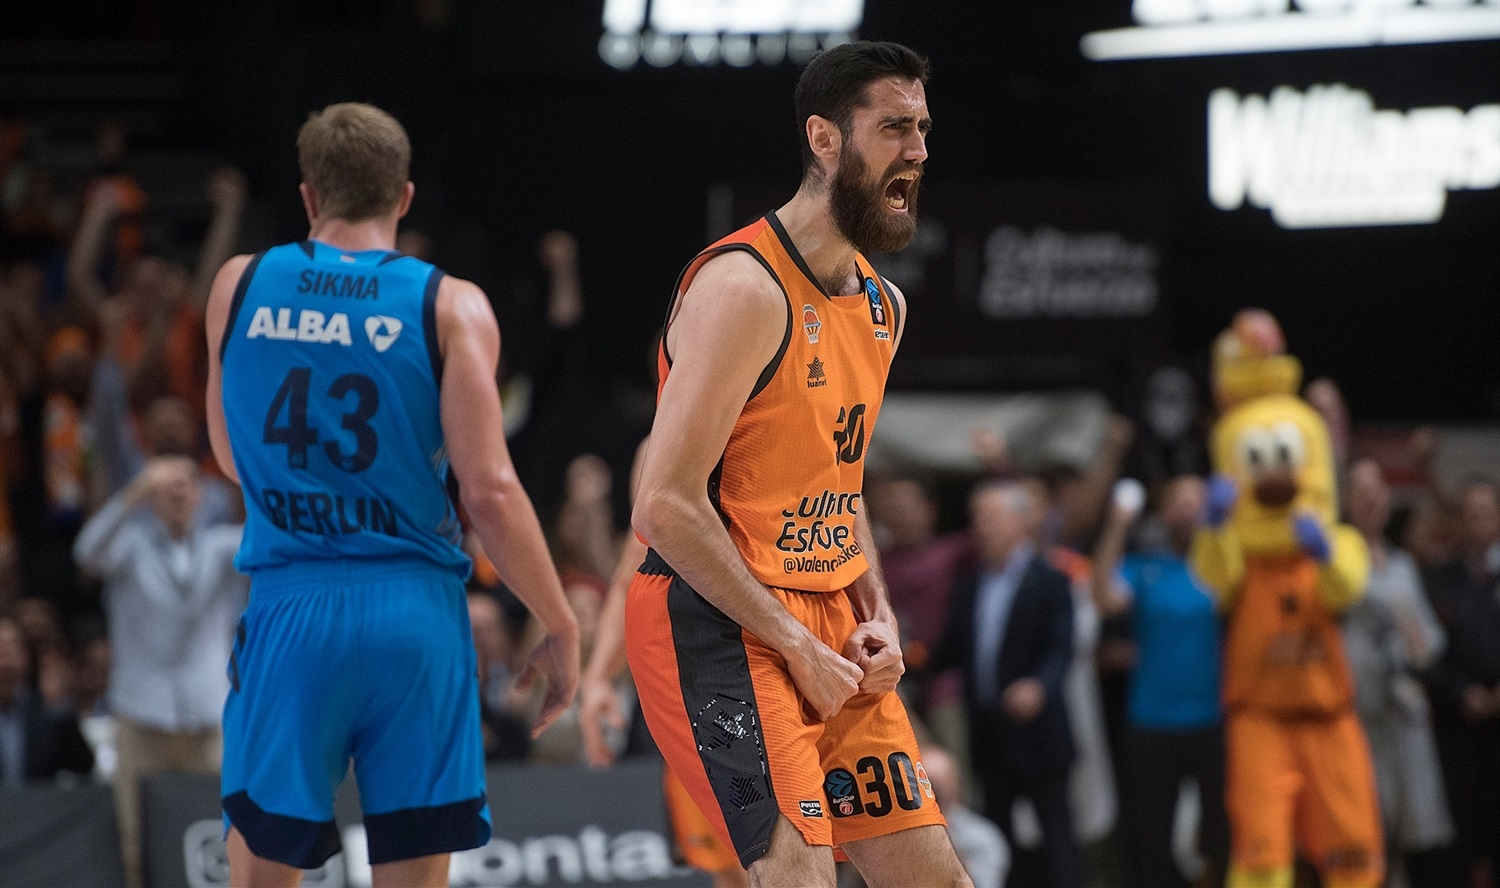 Joan Sastre - Valencia Basket champ - EuroCup Finals Game 3 - EC18